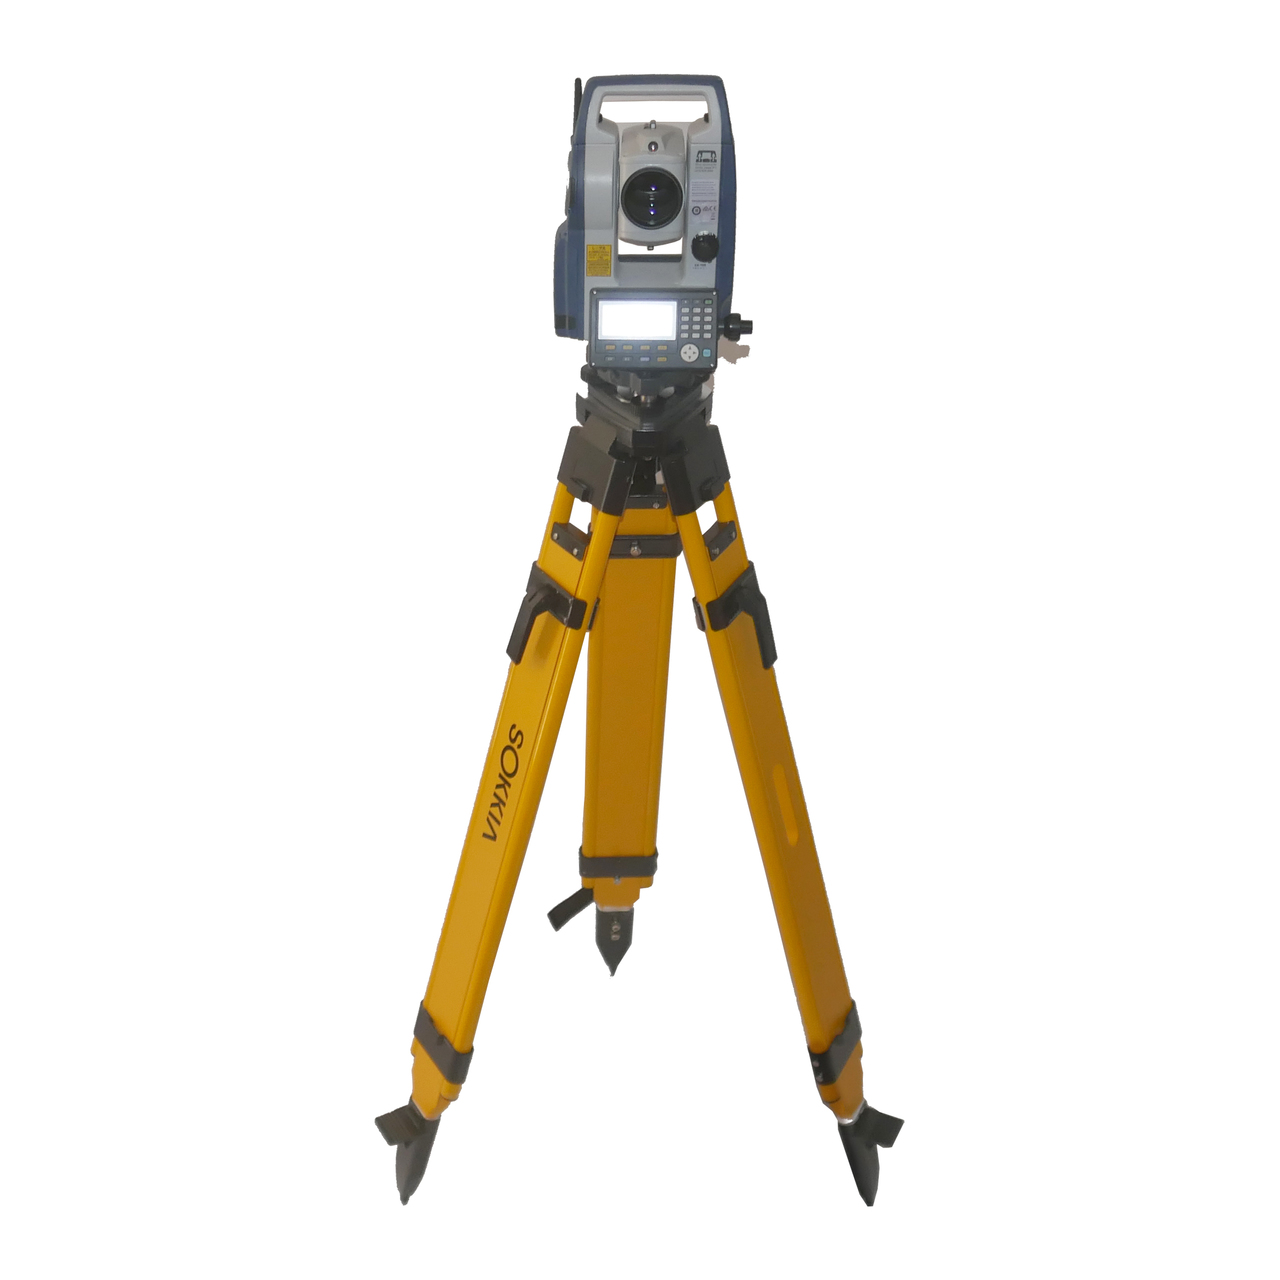 Sokkia SET CX105 Dual Face Reflectorless Total Station Tripod Prism 8' Prism Rod